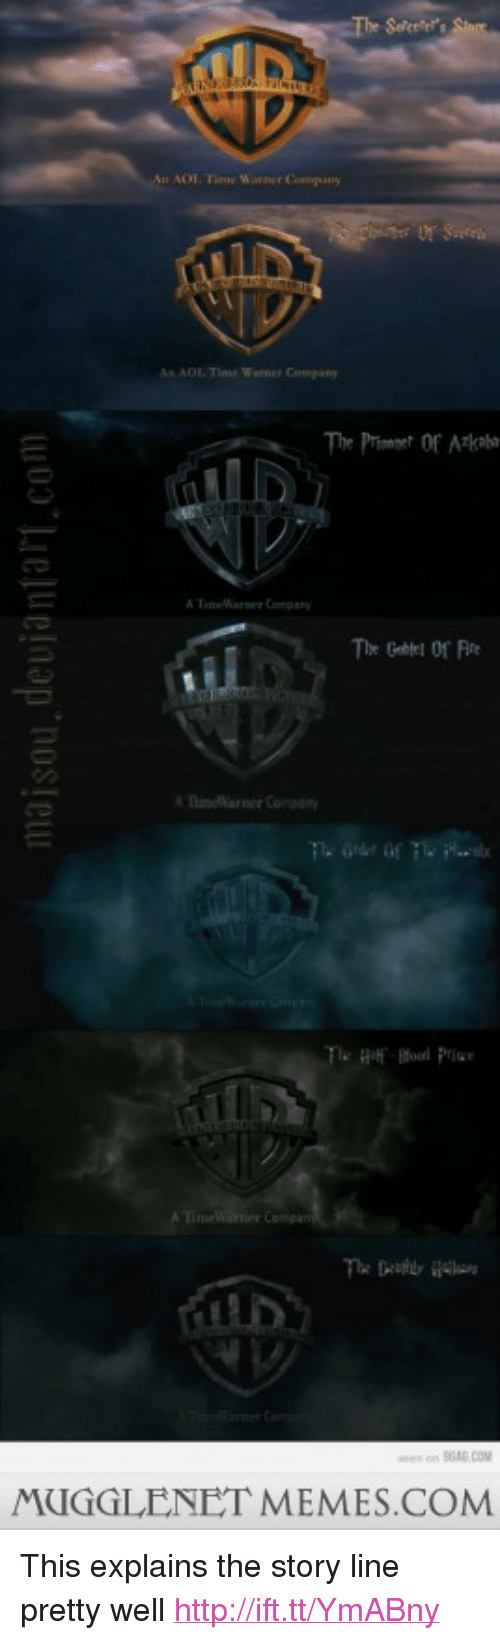 "adl: n ADL. Time Warner Company  ADL Time Worner Company  The Prinet Of Ak  Tmearner Coa  nS0RE.COM  MUGGLENET MEMES.COM <p>This explains the story line pretty well <a href=""http://ift.tt/YmABny"">http://ift.tt/YmABny</a></p>"